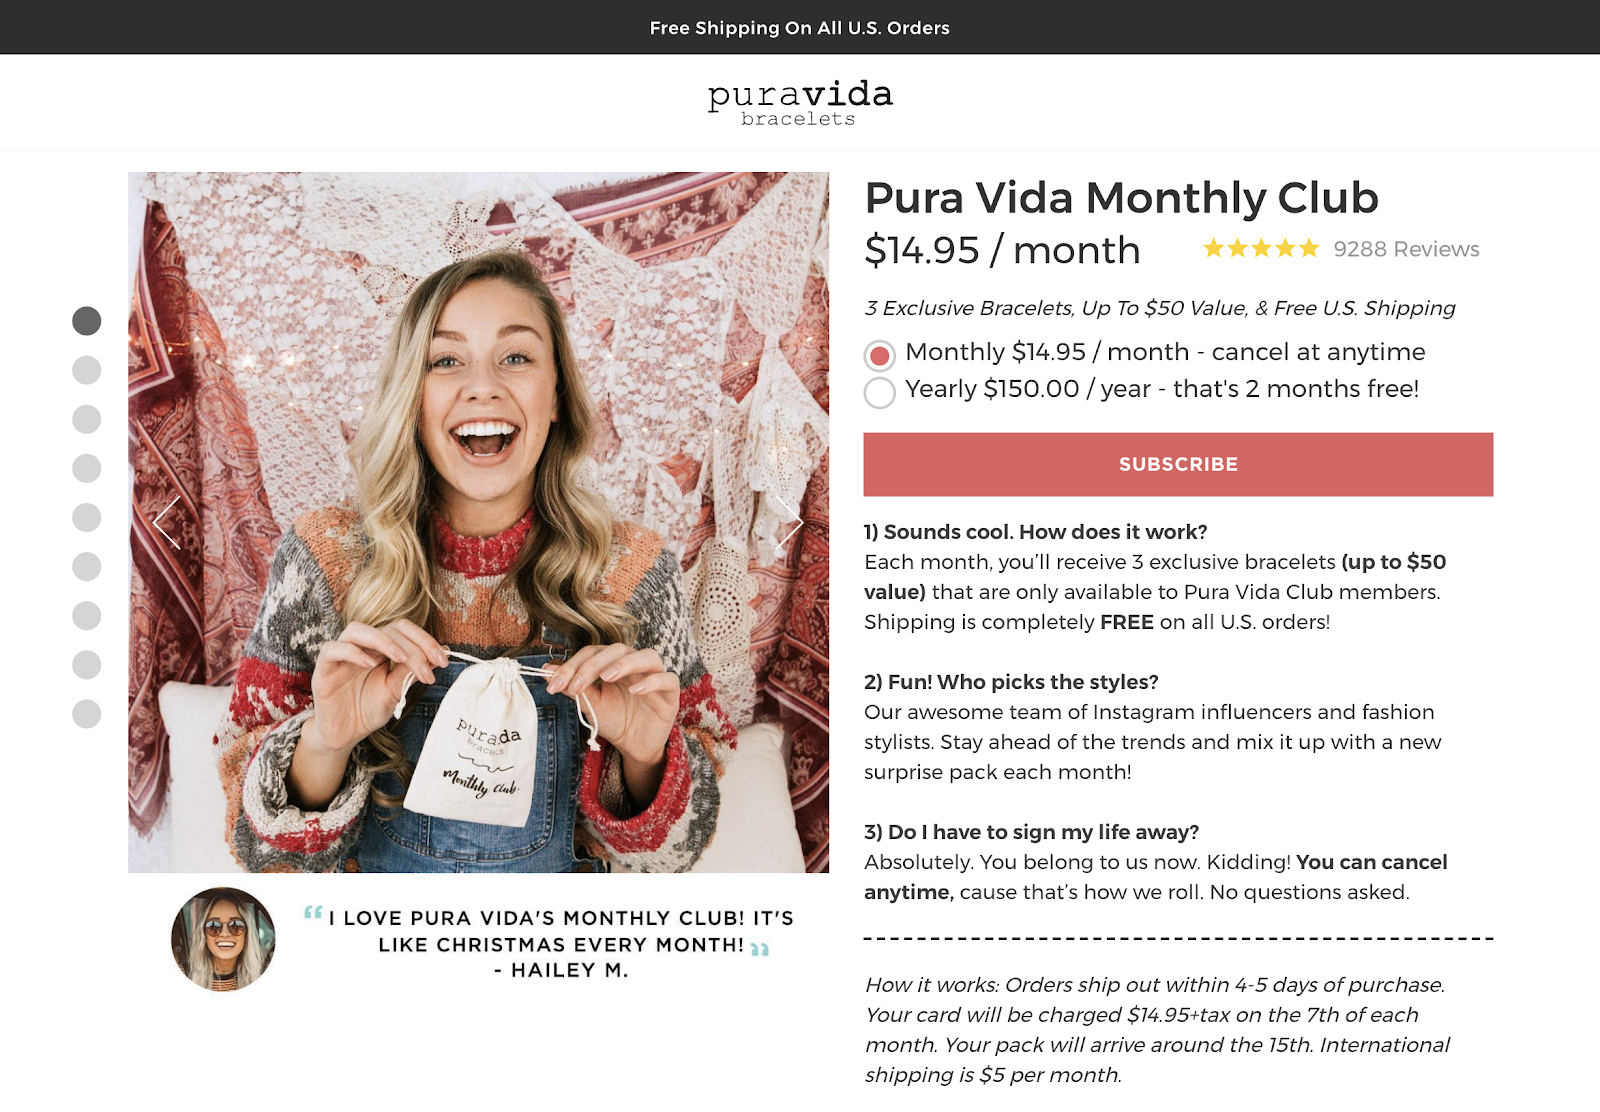 pura vida monthly club offer example social media engagement strategy